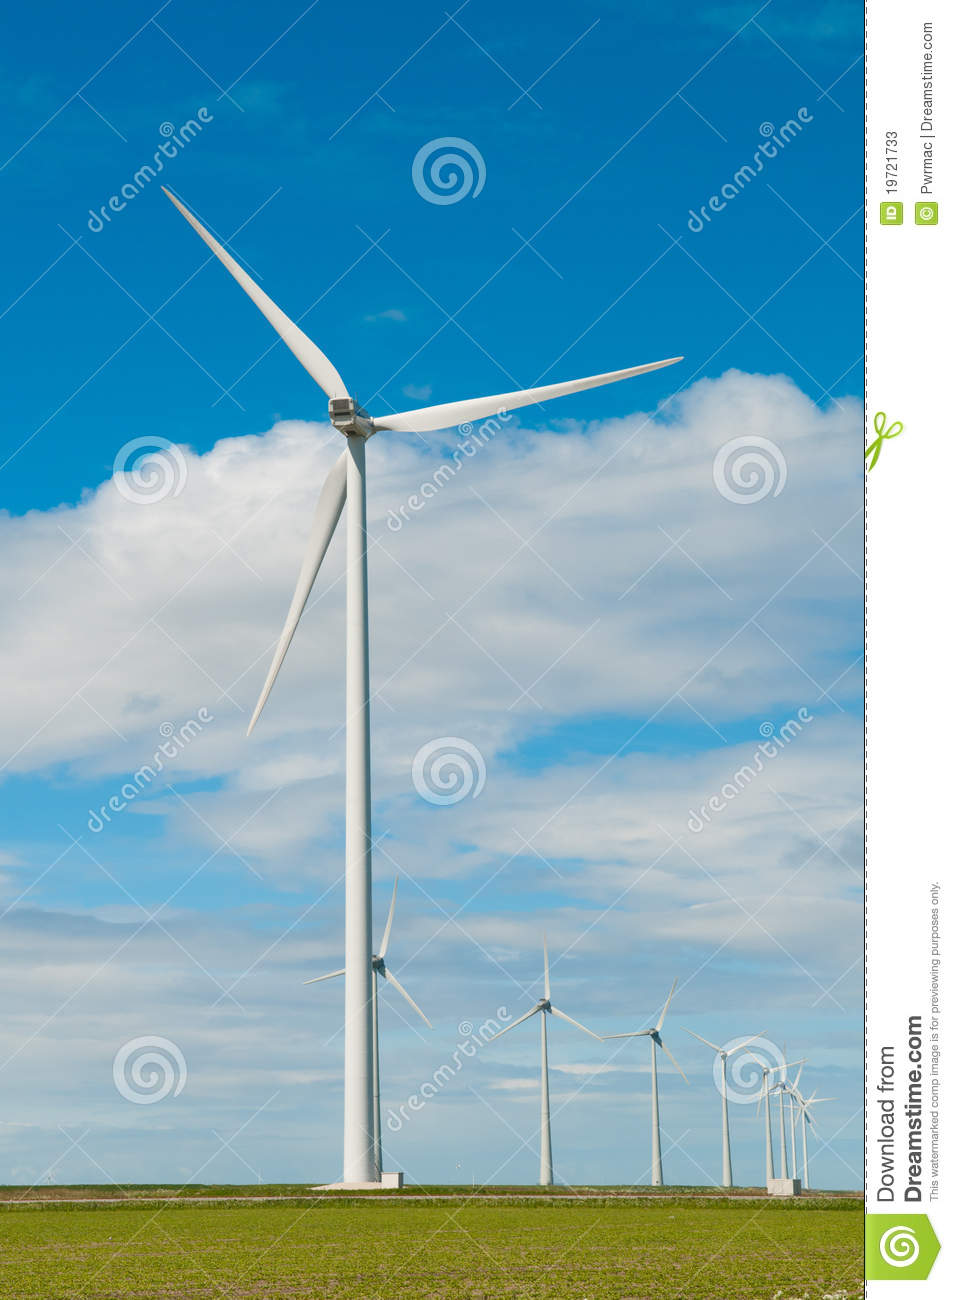 Windmills For Generating Electricity Stock Photos - Image: 19721733